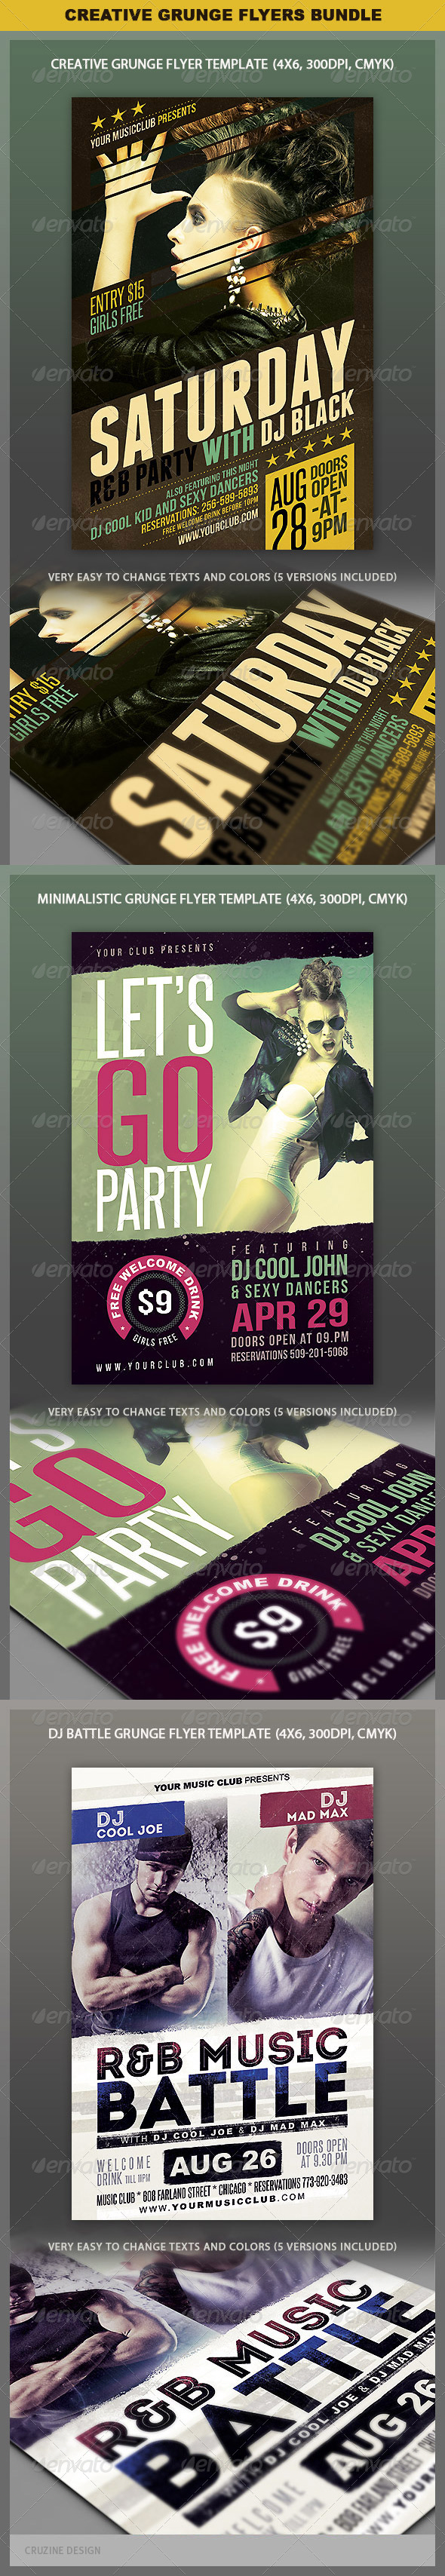 Creative Grunge Flyer Bundle - Clubs & Parties Events